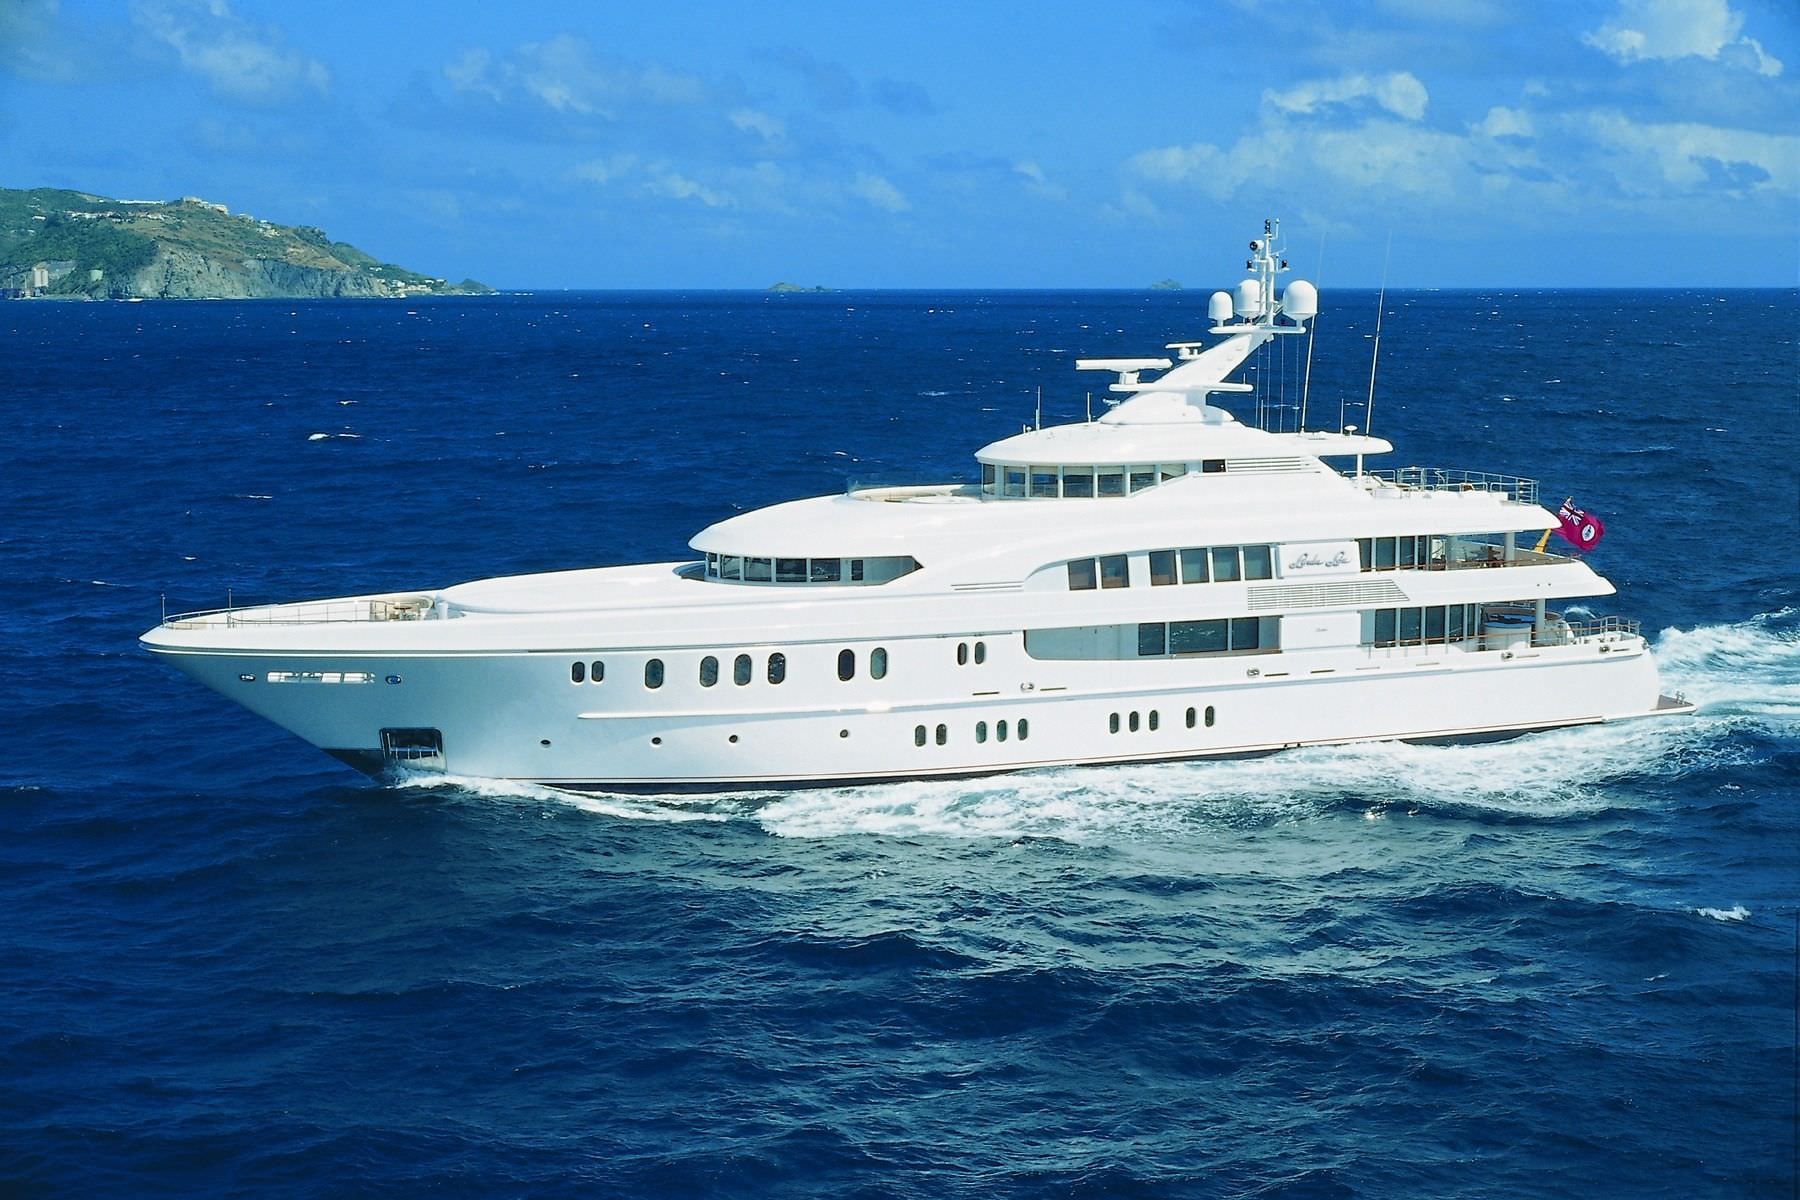 mega-yacht-luxe-coque-deplacement-20209-196551